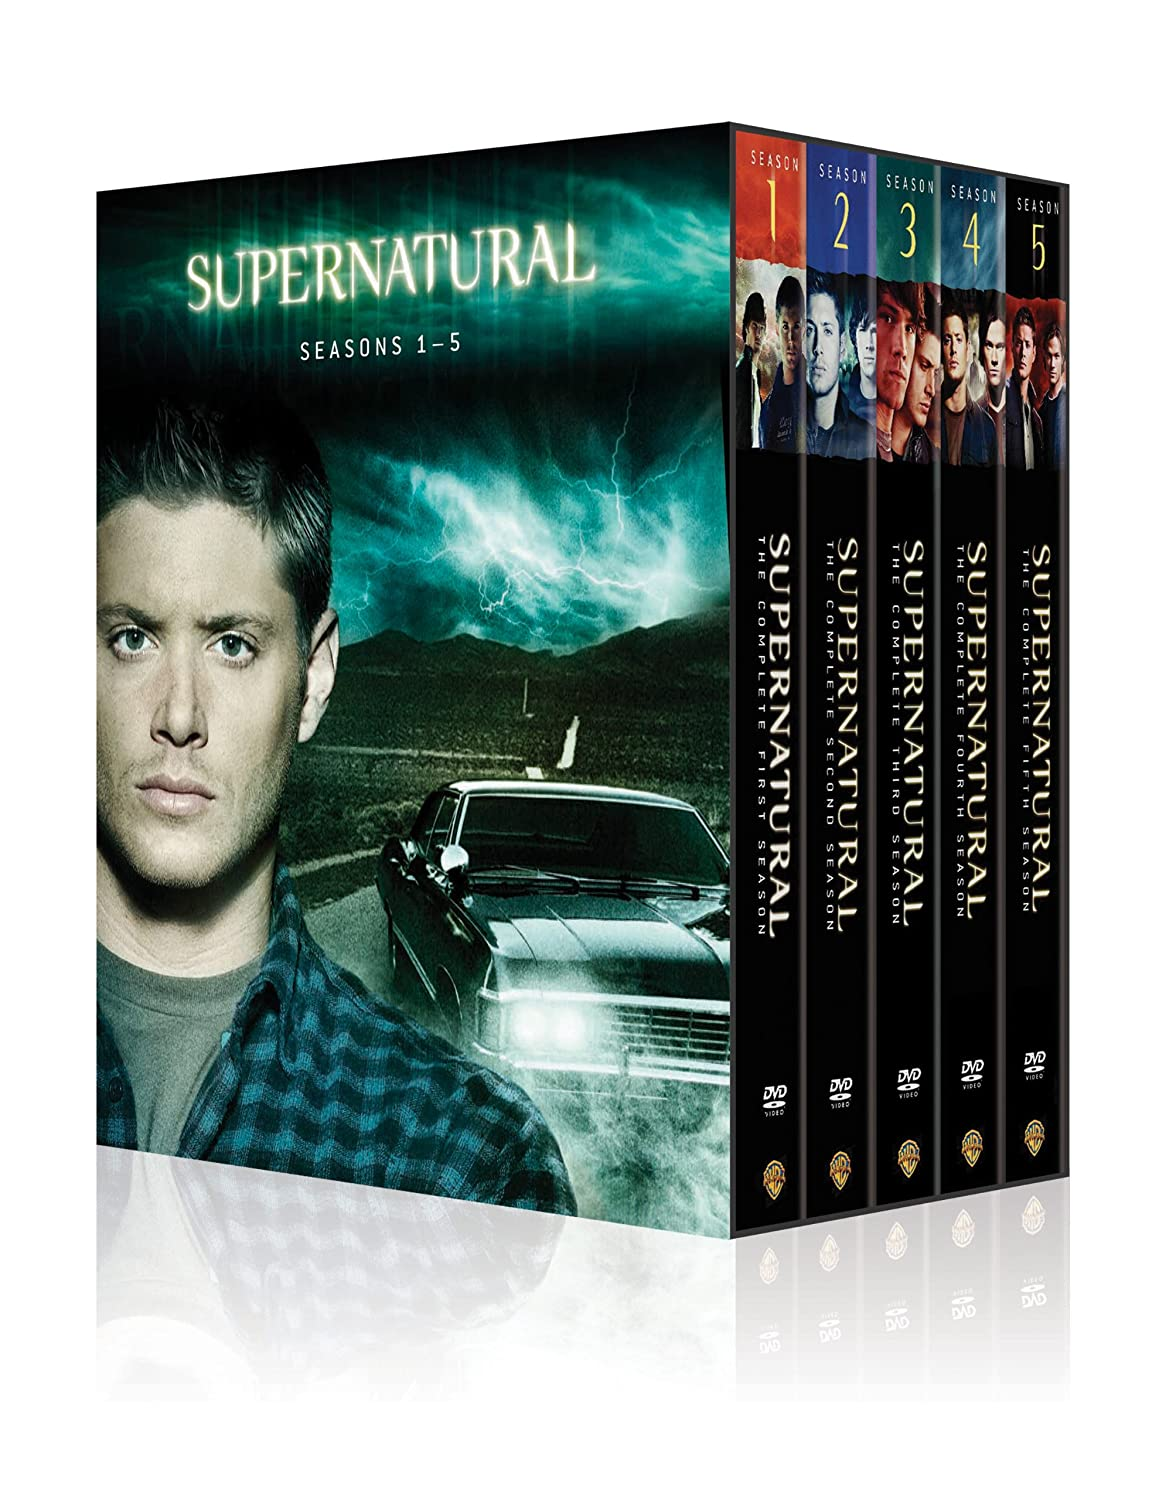 Amazon.com: Supernatural: Seasons 1-5 Box Set: Supernatural: Movies & TV